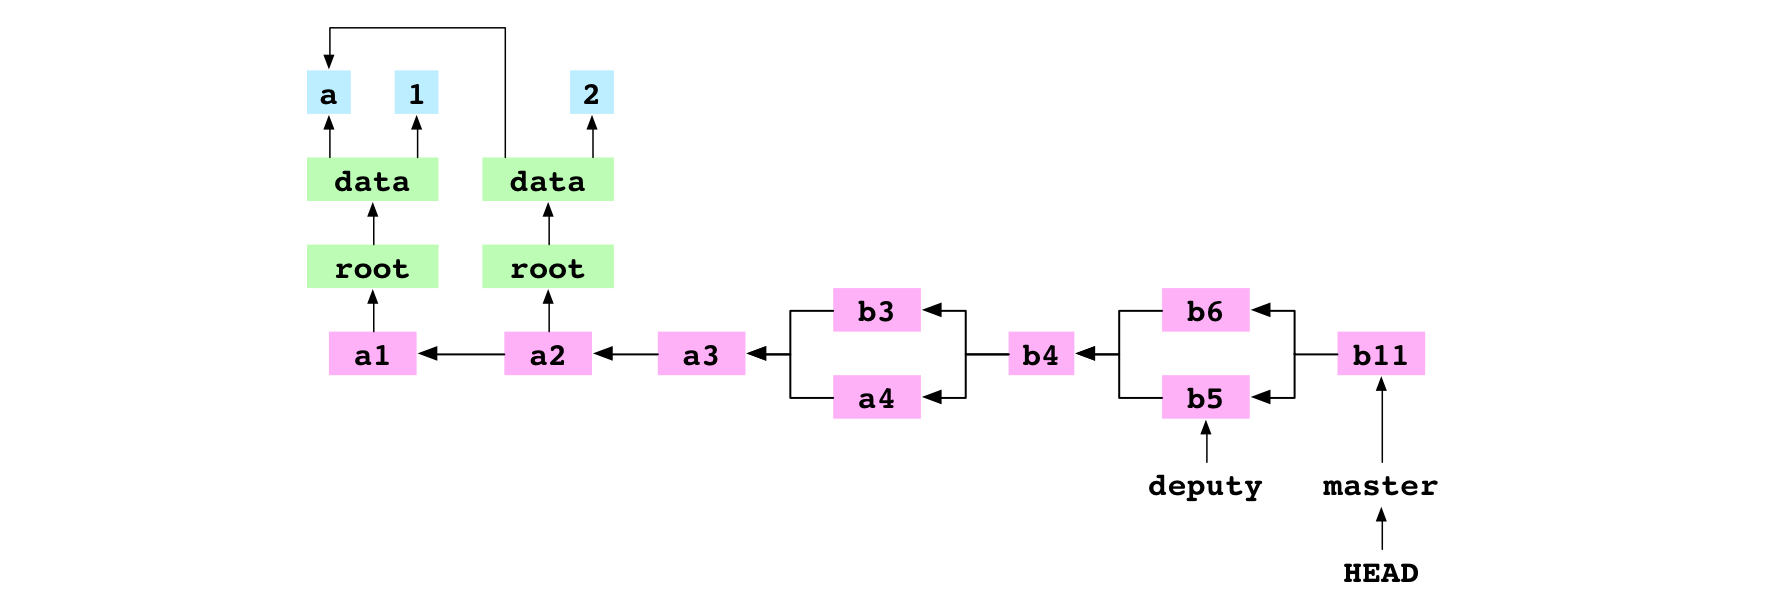 `b11`, the merge commit resulting from the conflicted, recursive merge of `b5` into `b6`